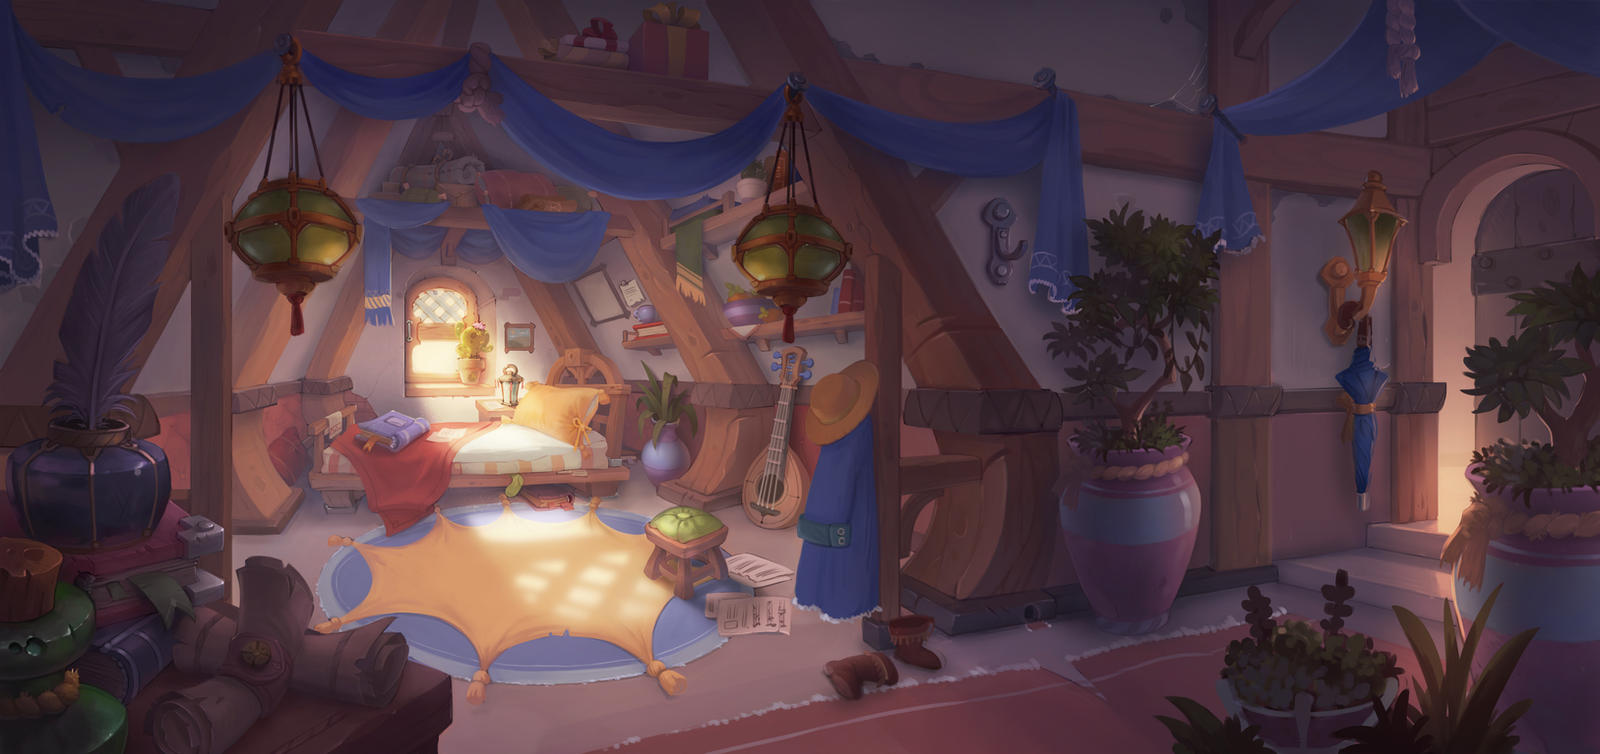 fantasy room by lepyoshka on DeviantArt